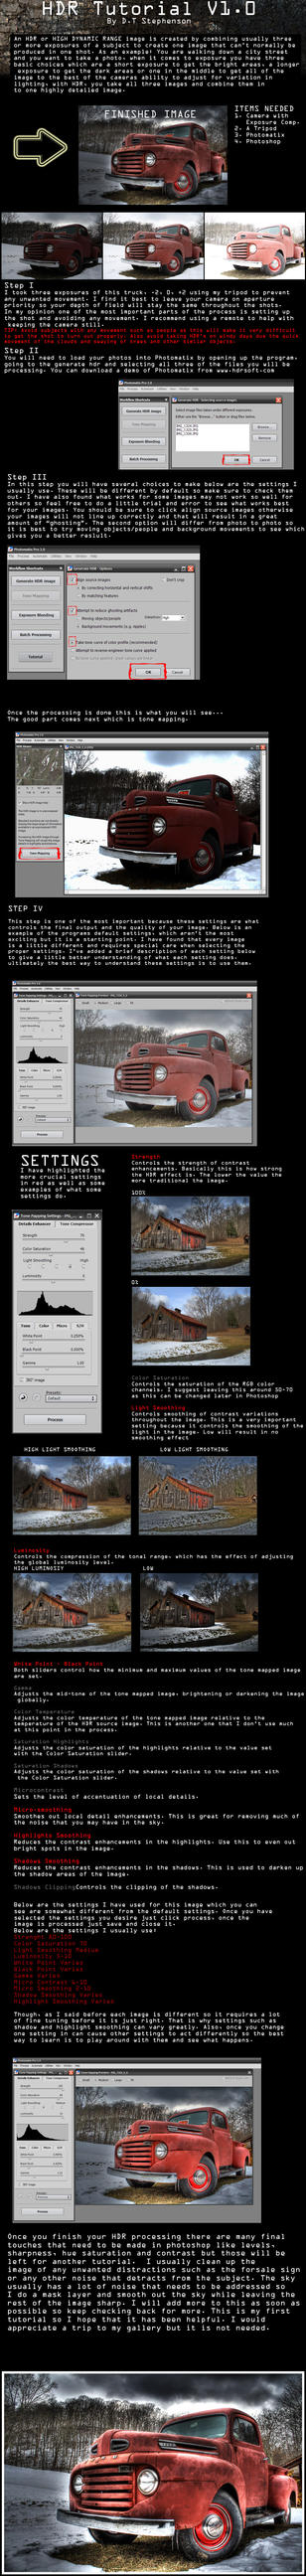 HDR Tutorial v1.0 by Logicalx